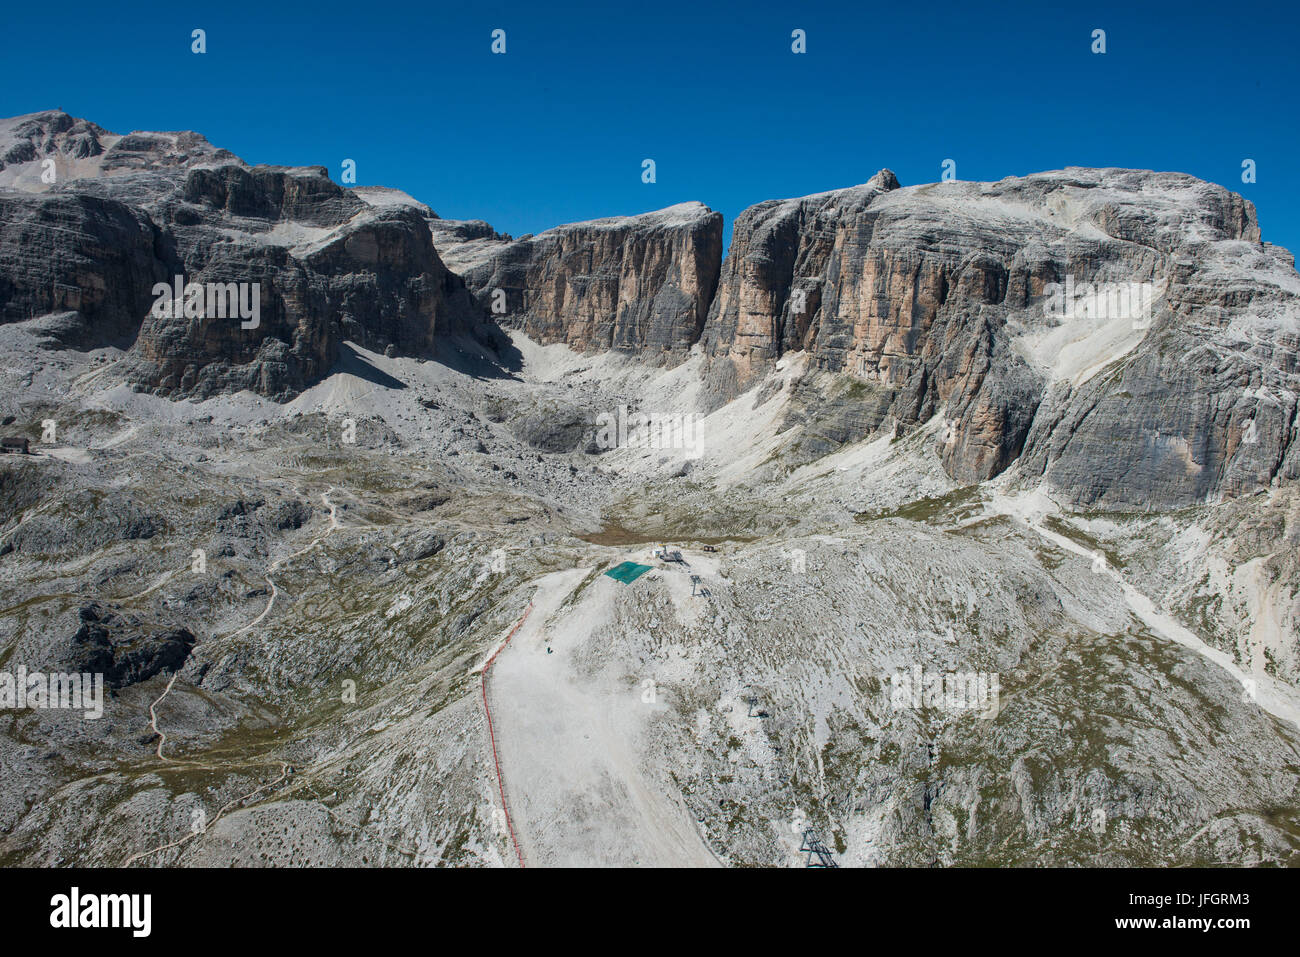 Sella group, the Dolomites, Piz gust, Piz there Lech, Valun, wall bars, aerial picture, high mountains, Corvara, Stock Photo